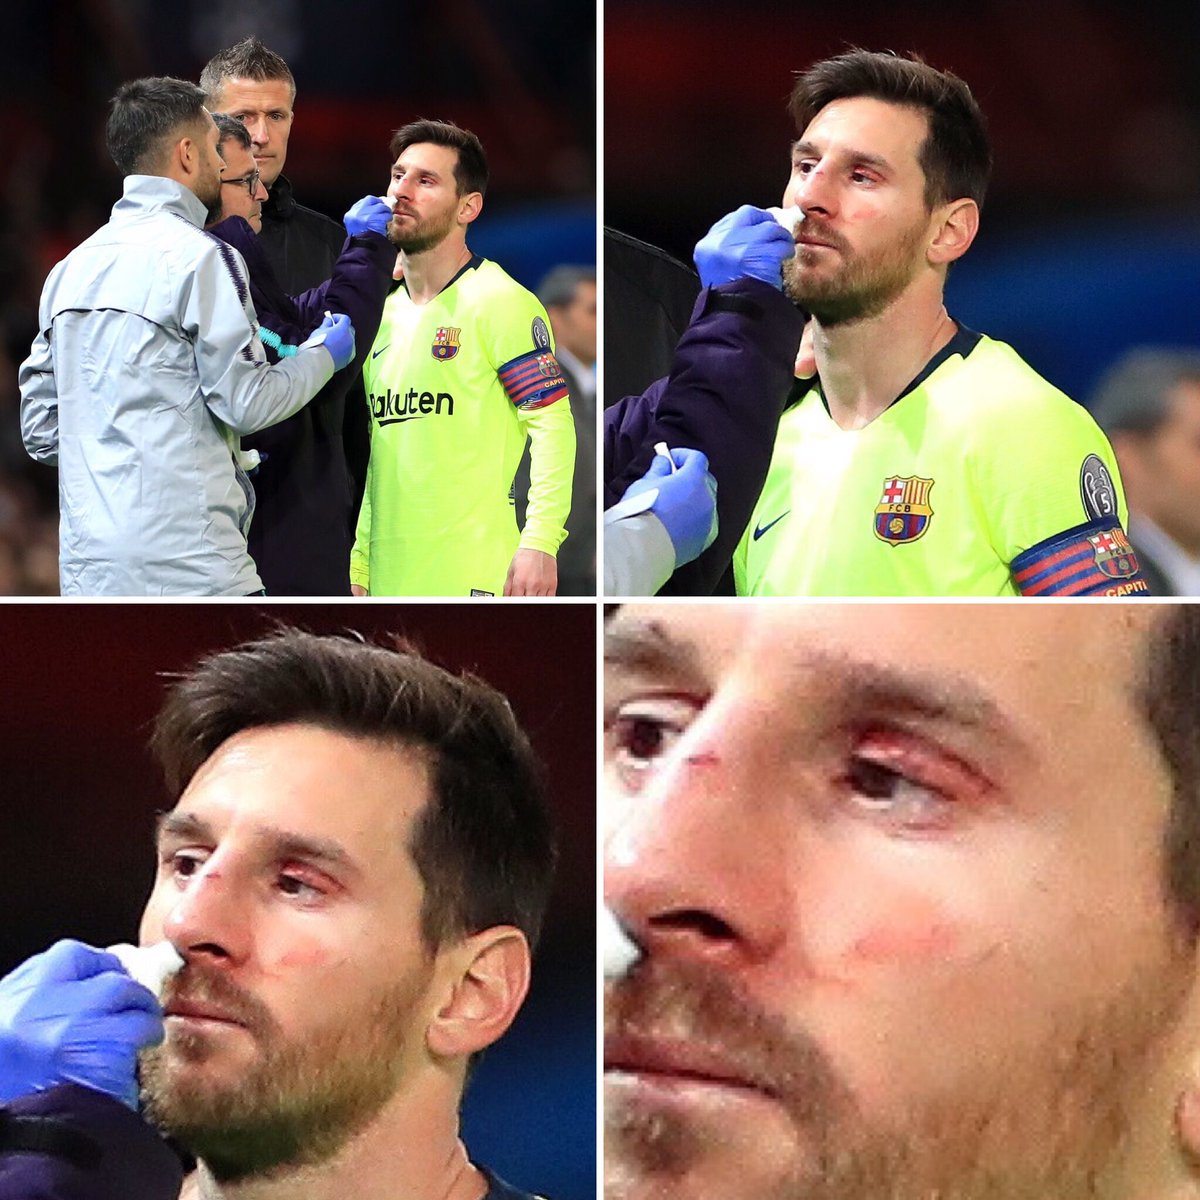 Man Utd vs Barca: Messi Gets A Broken Nose And Swollen Eye After Collision With Chris Smalling